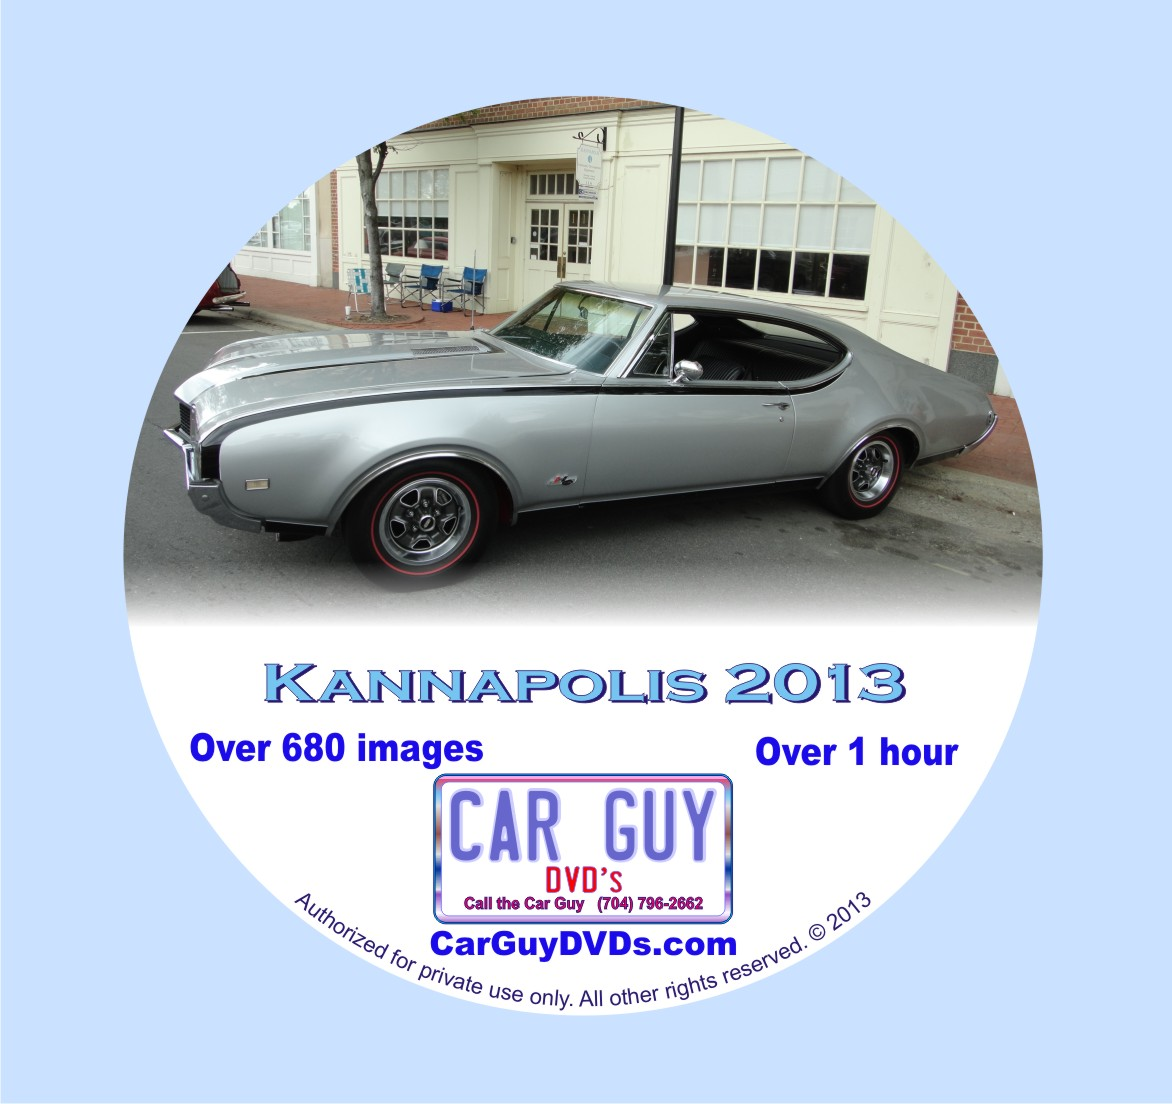 Kannapolis Cruise and Car Show 2013